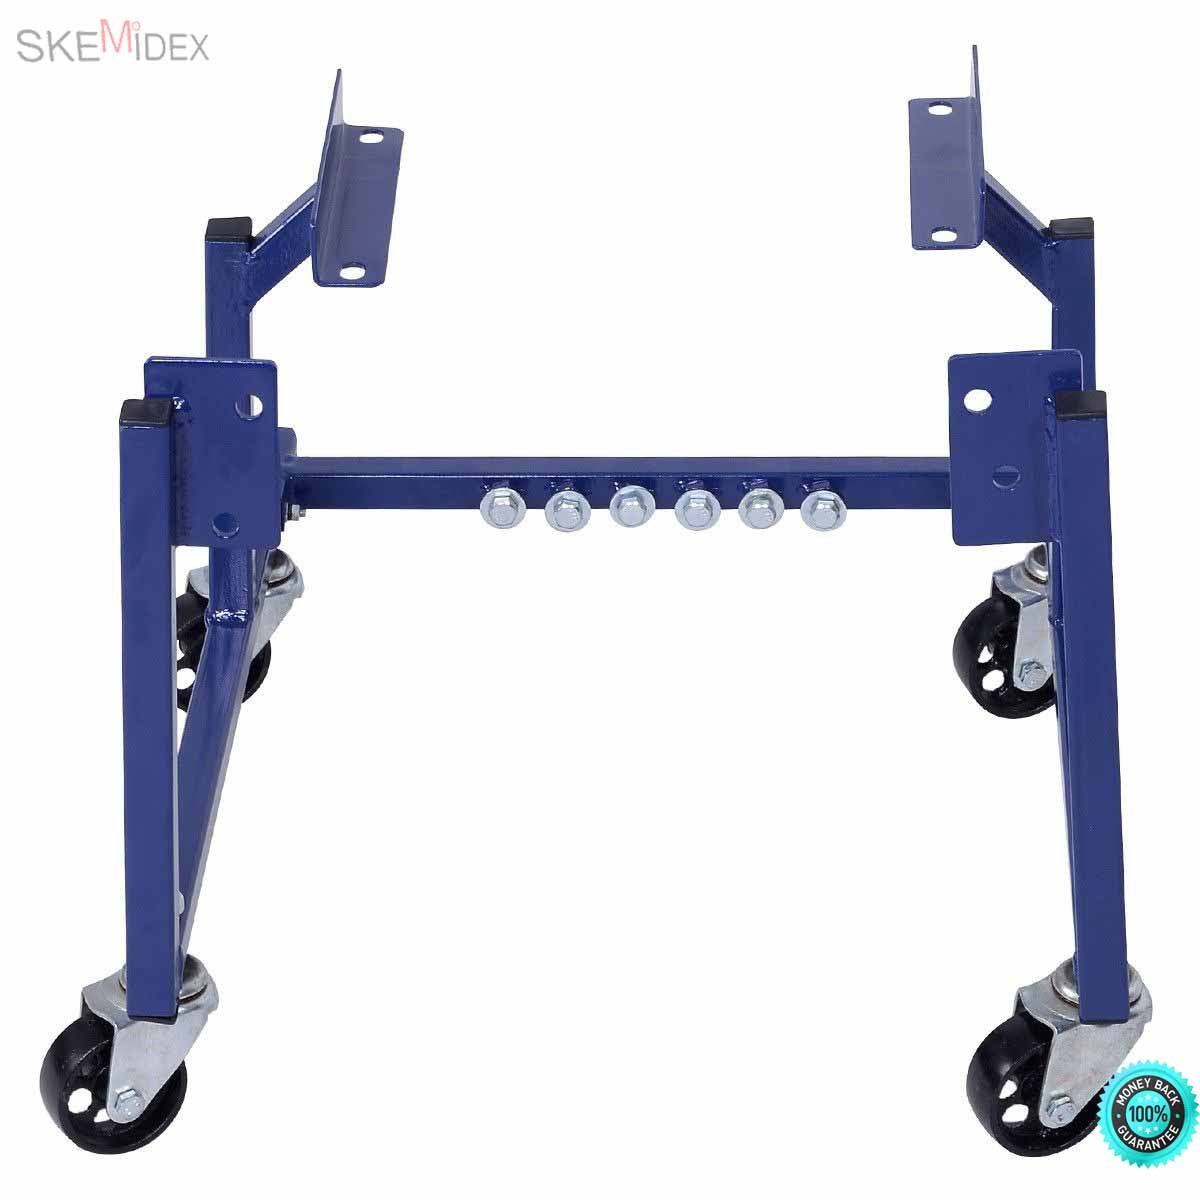 SKEMiDEX---New 1000lb Auto Engine Cradle Stand Ford Dolly Mover Repair Rebuild w/Wheels This is our 1000 LBS Ton Auto Engine Cradle for Ford, which is ideal for storing, transporting.